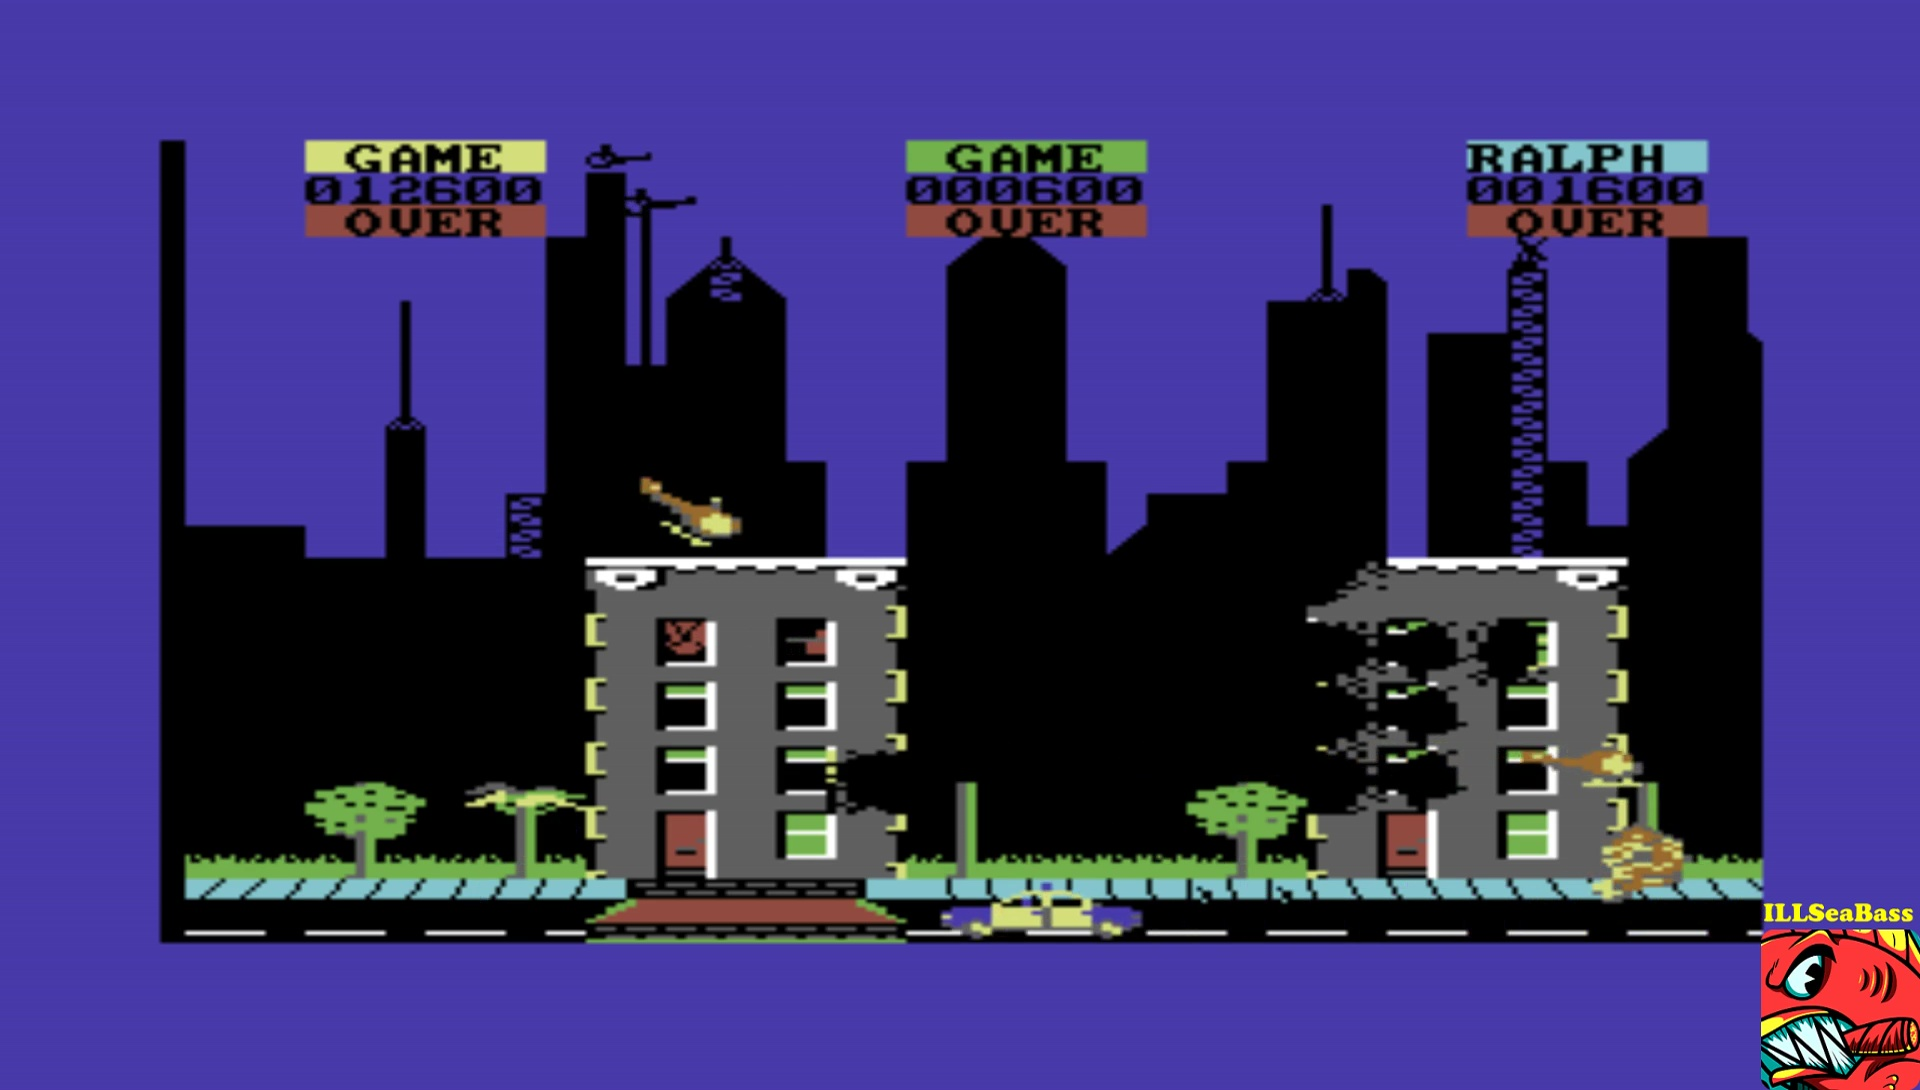 ILLSeaBass: Rampage (Commodore 64 Emulated) 12,600 points on 2017-02-25 21:04:11